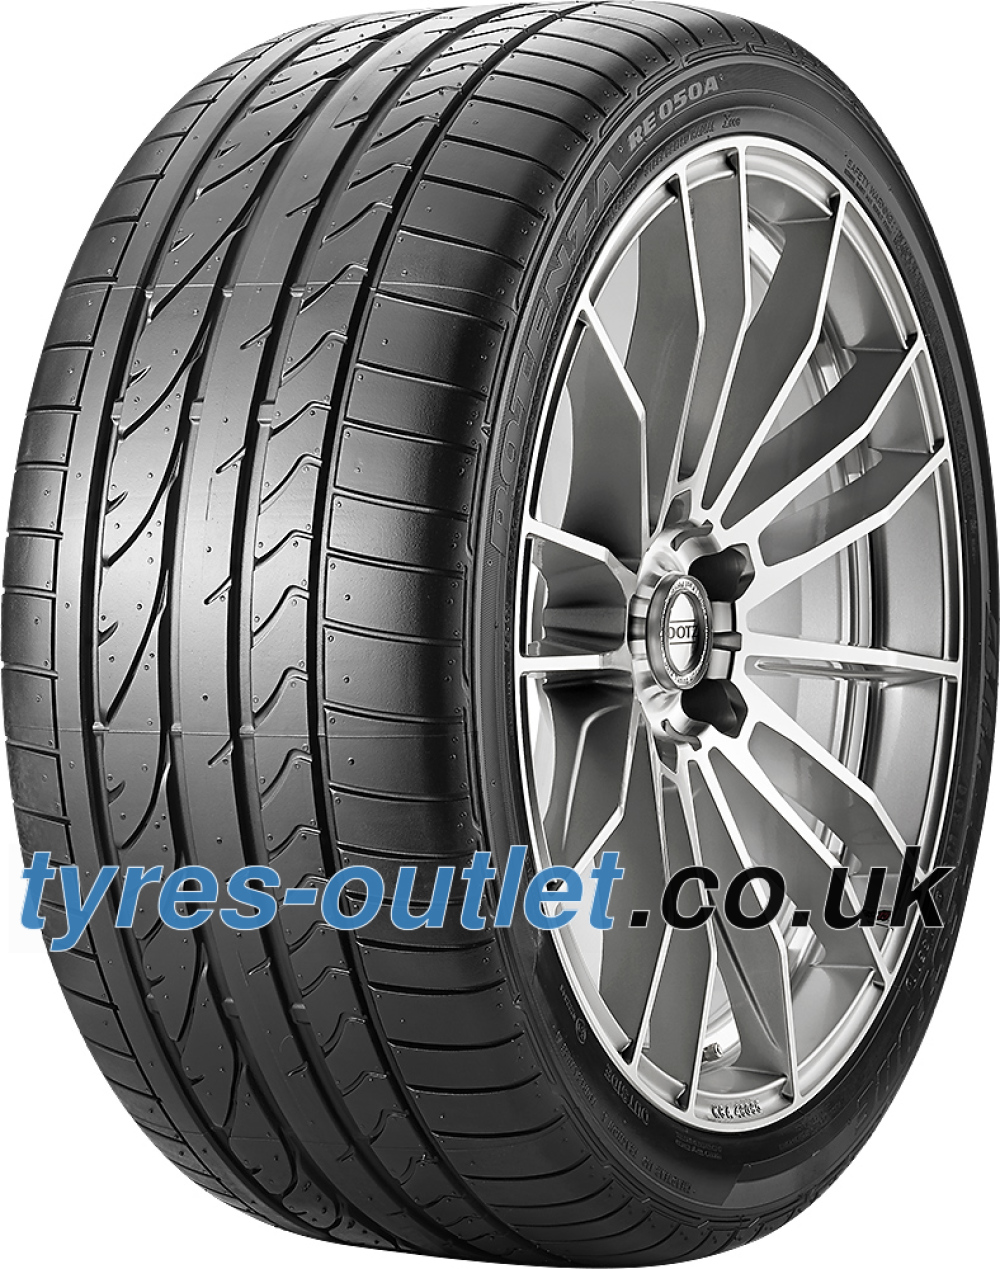 Bridgestone Potenza RE 050 A RFT ( 205/45 R17 88V XL *, runflat, with rim protection (MFS) )